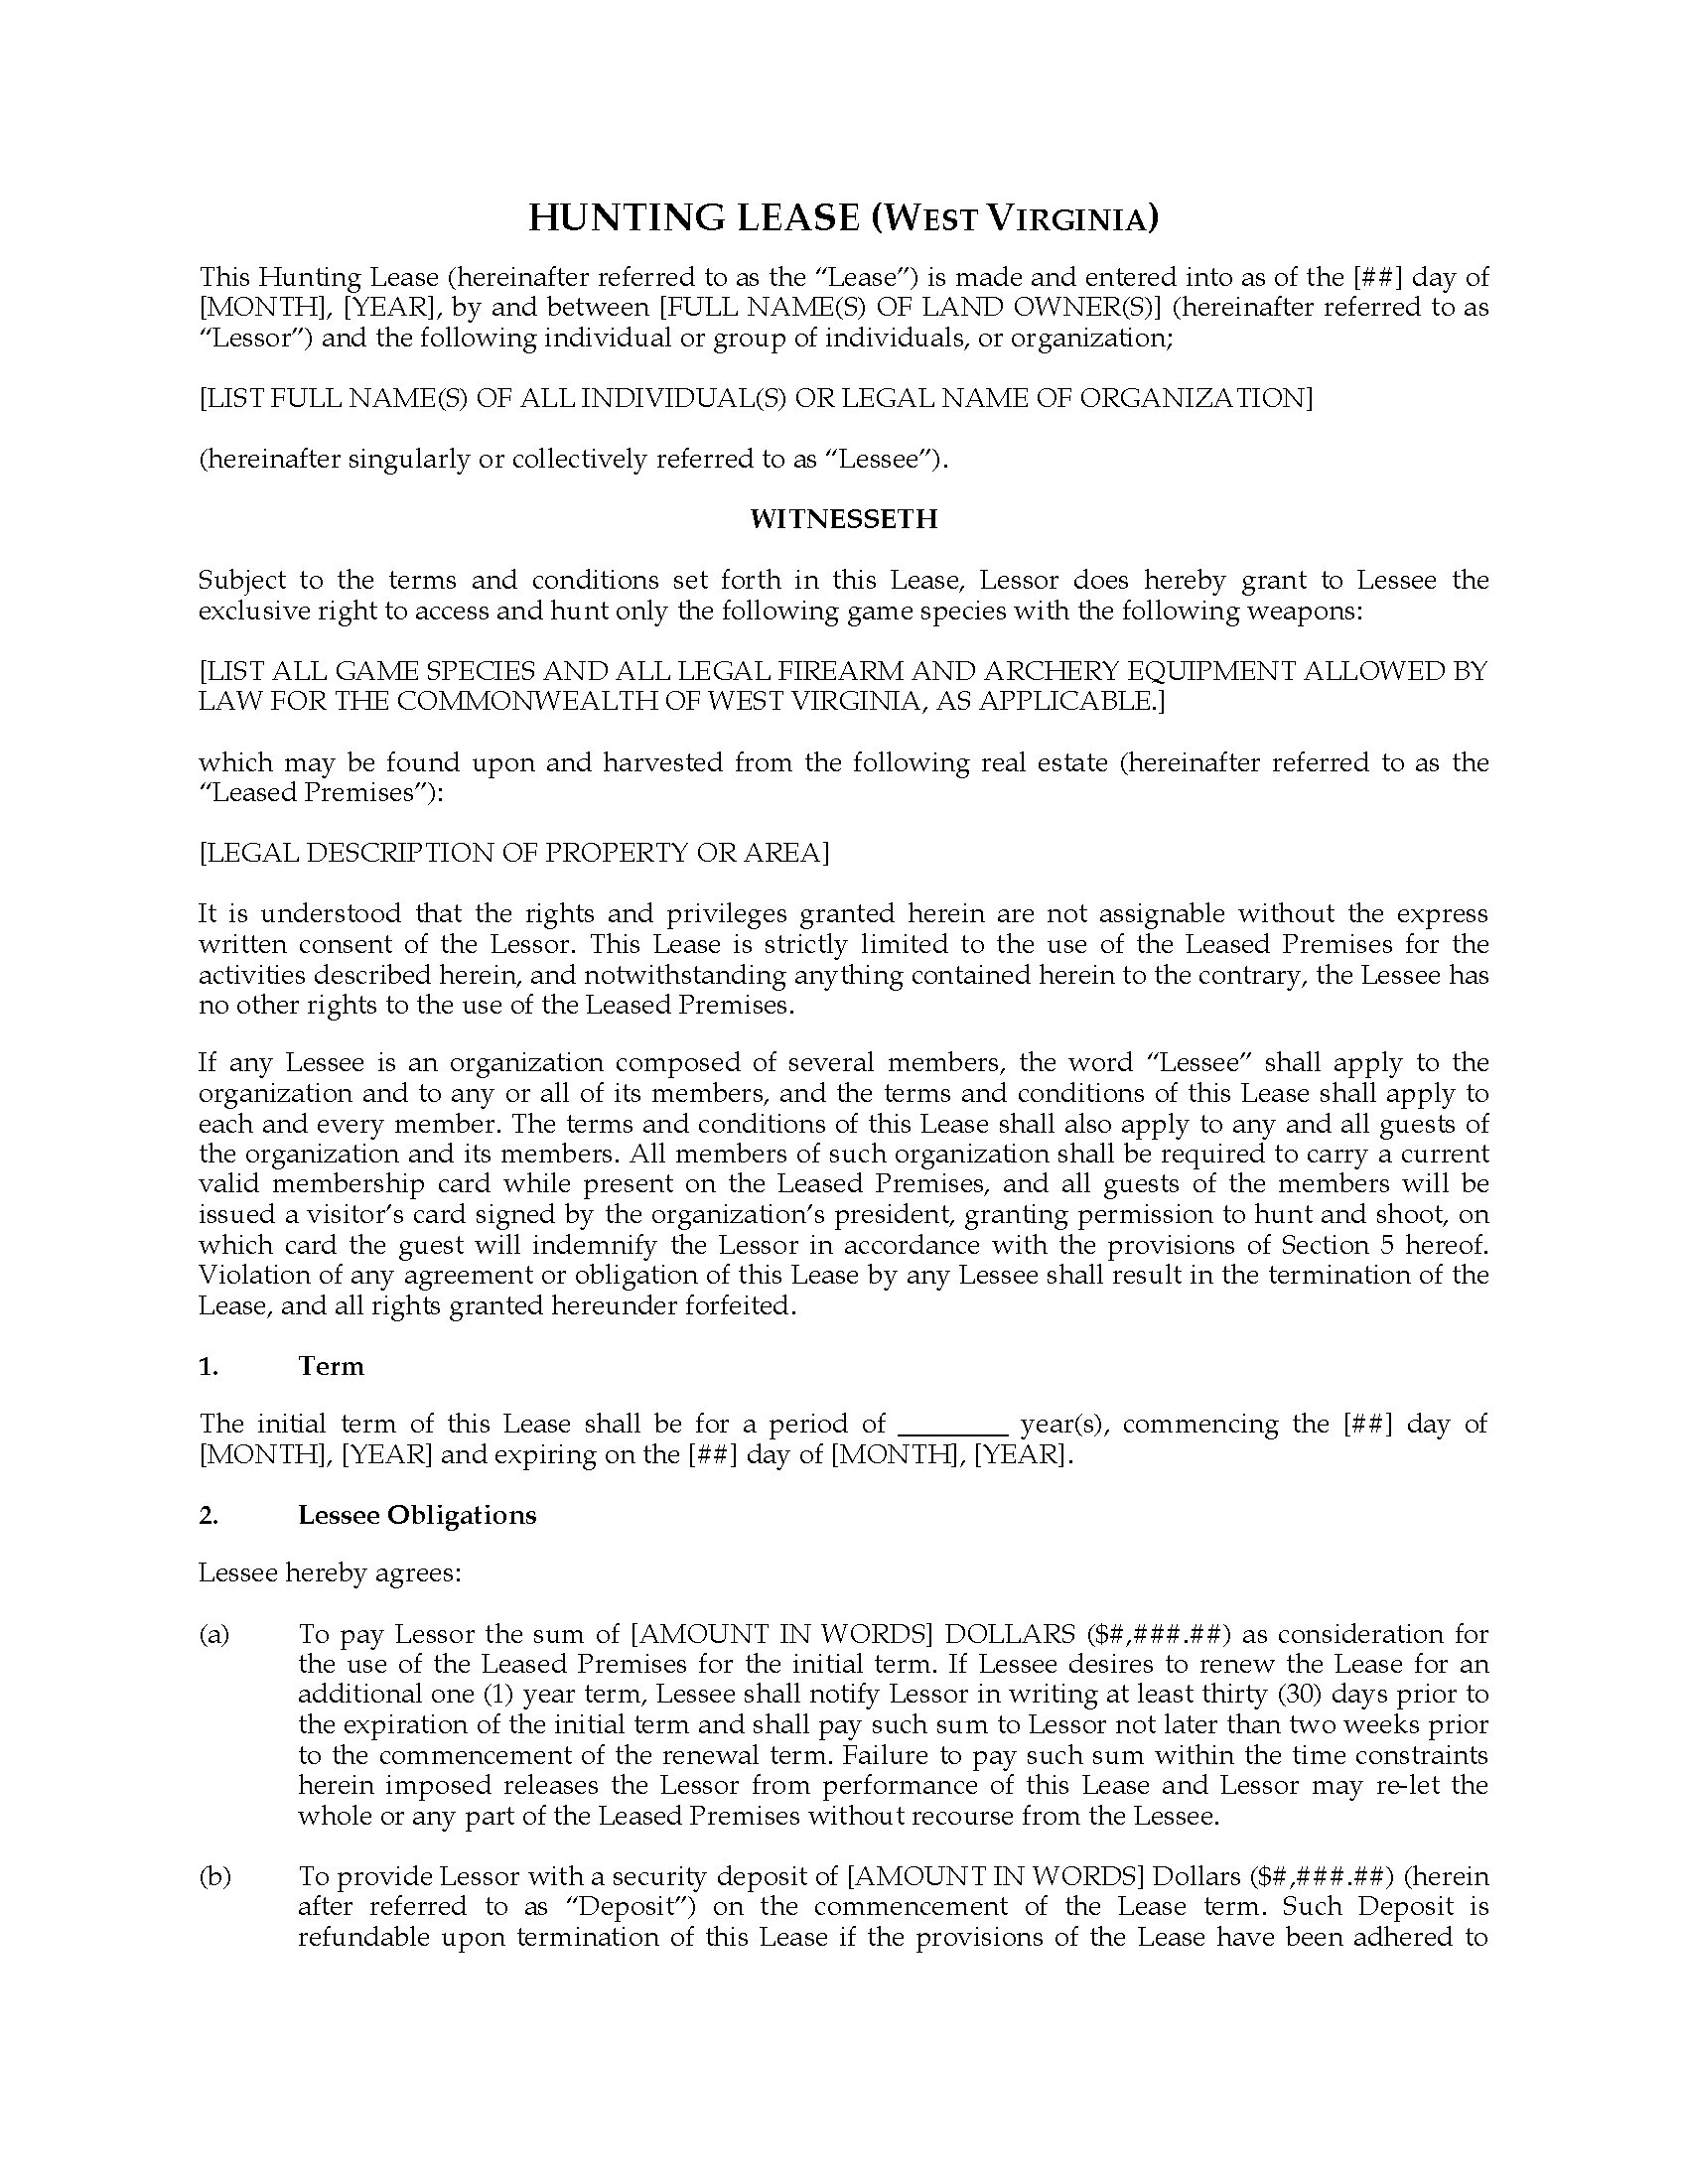 West Virginia Hunting Lease Agreement – Hunting Lease Agreement